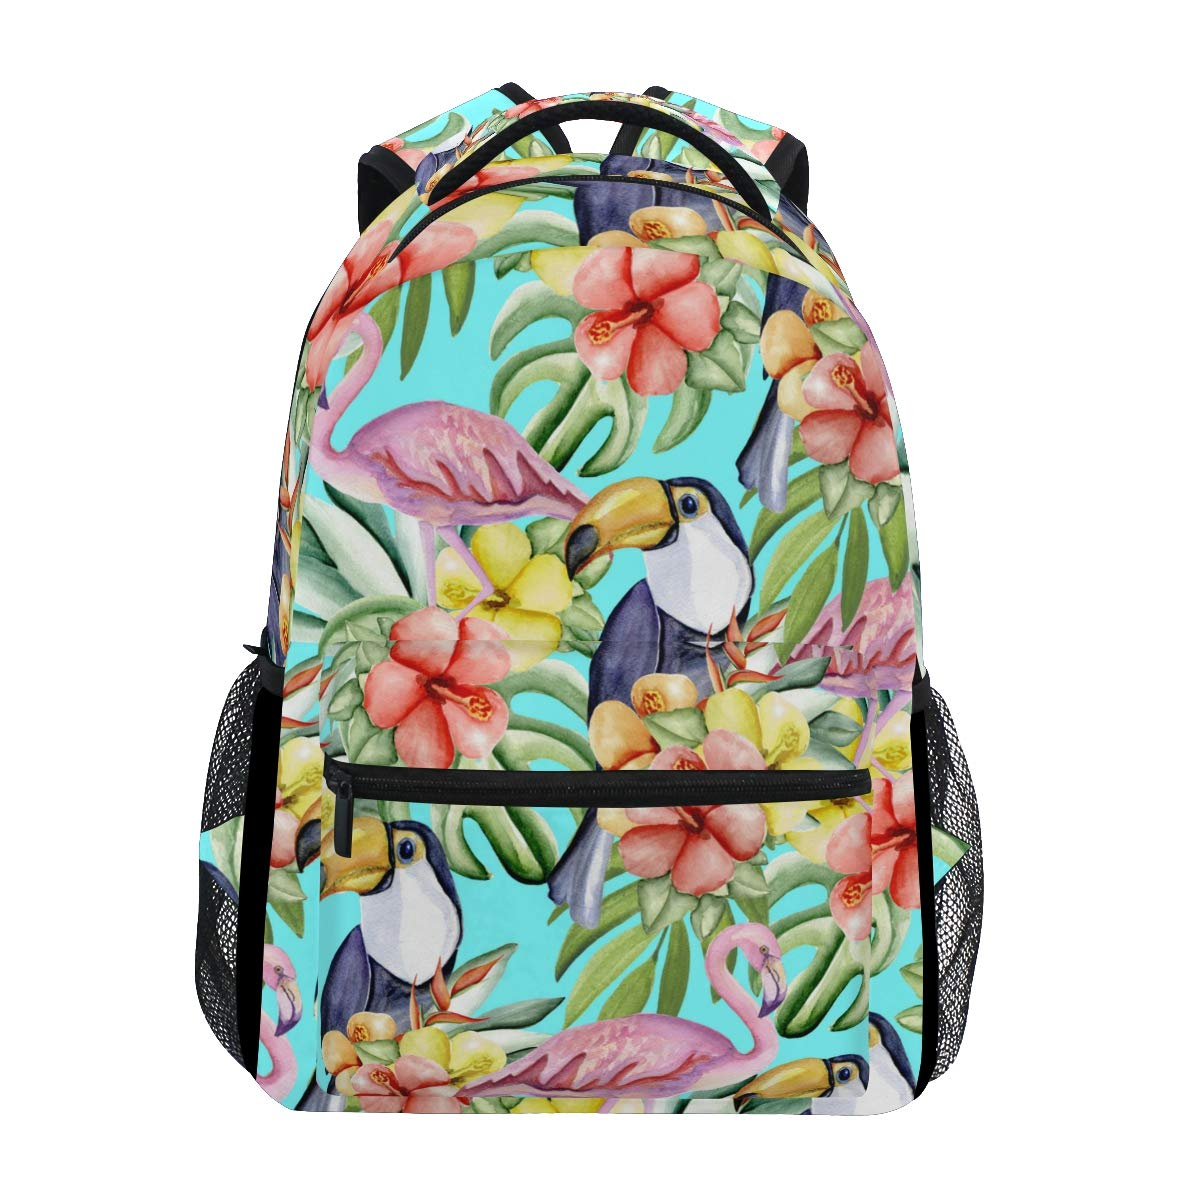 School Backpack Summer Tropical Flowers Toucans Flamingo Lightweight Travel Daypack College Bag for Women Girls by My Little Nest